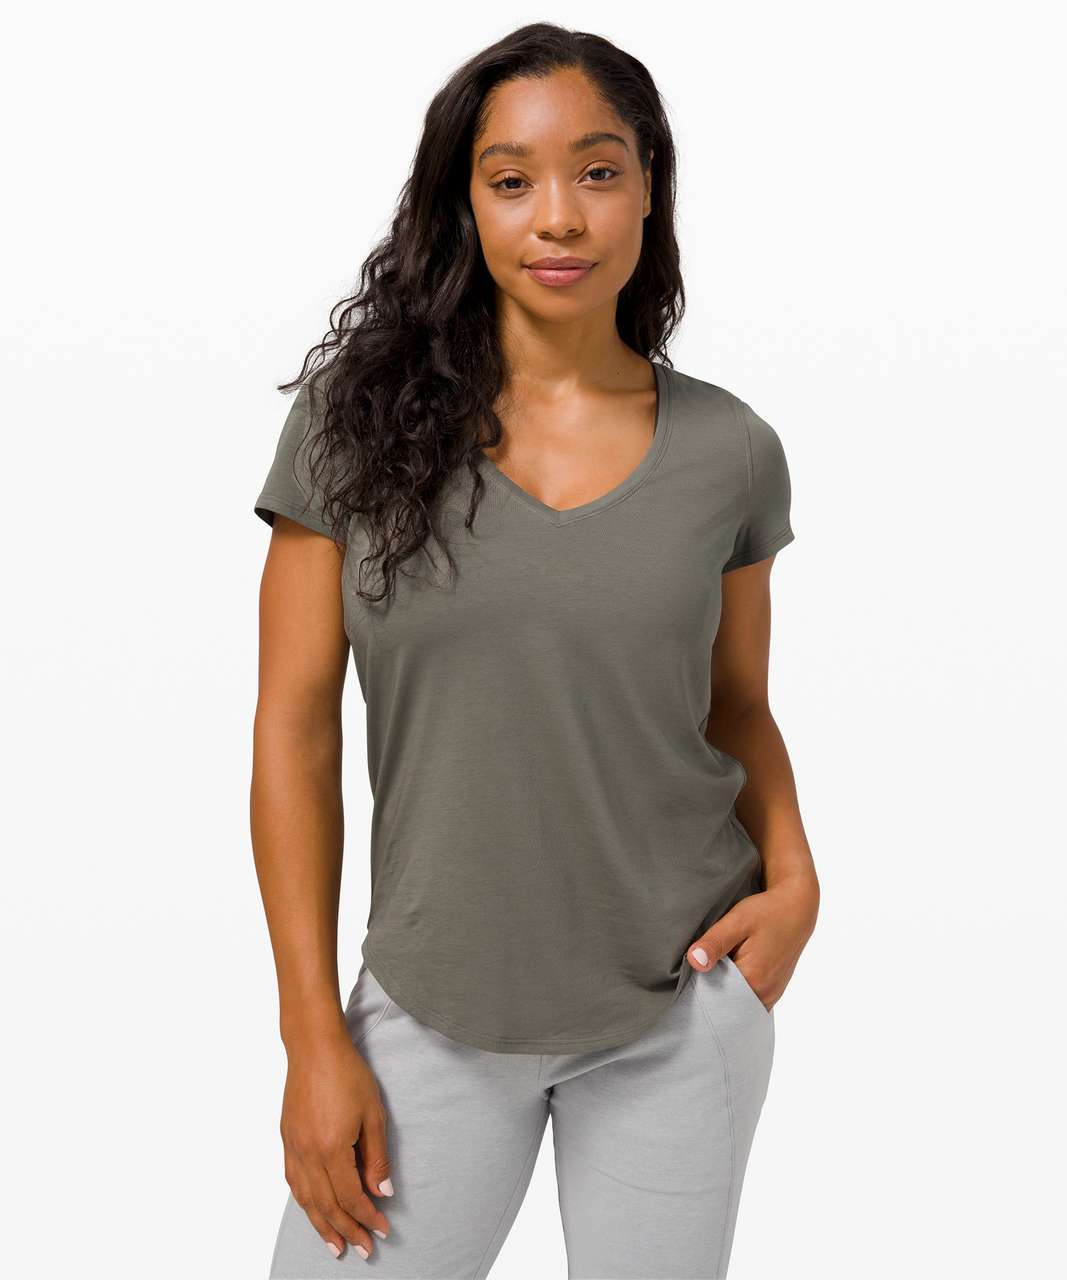 Lululemon Love Tee V - Grey Sage